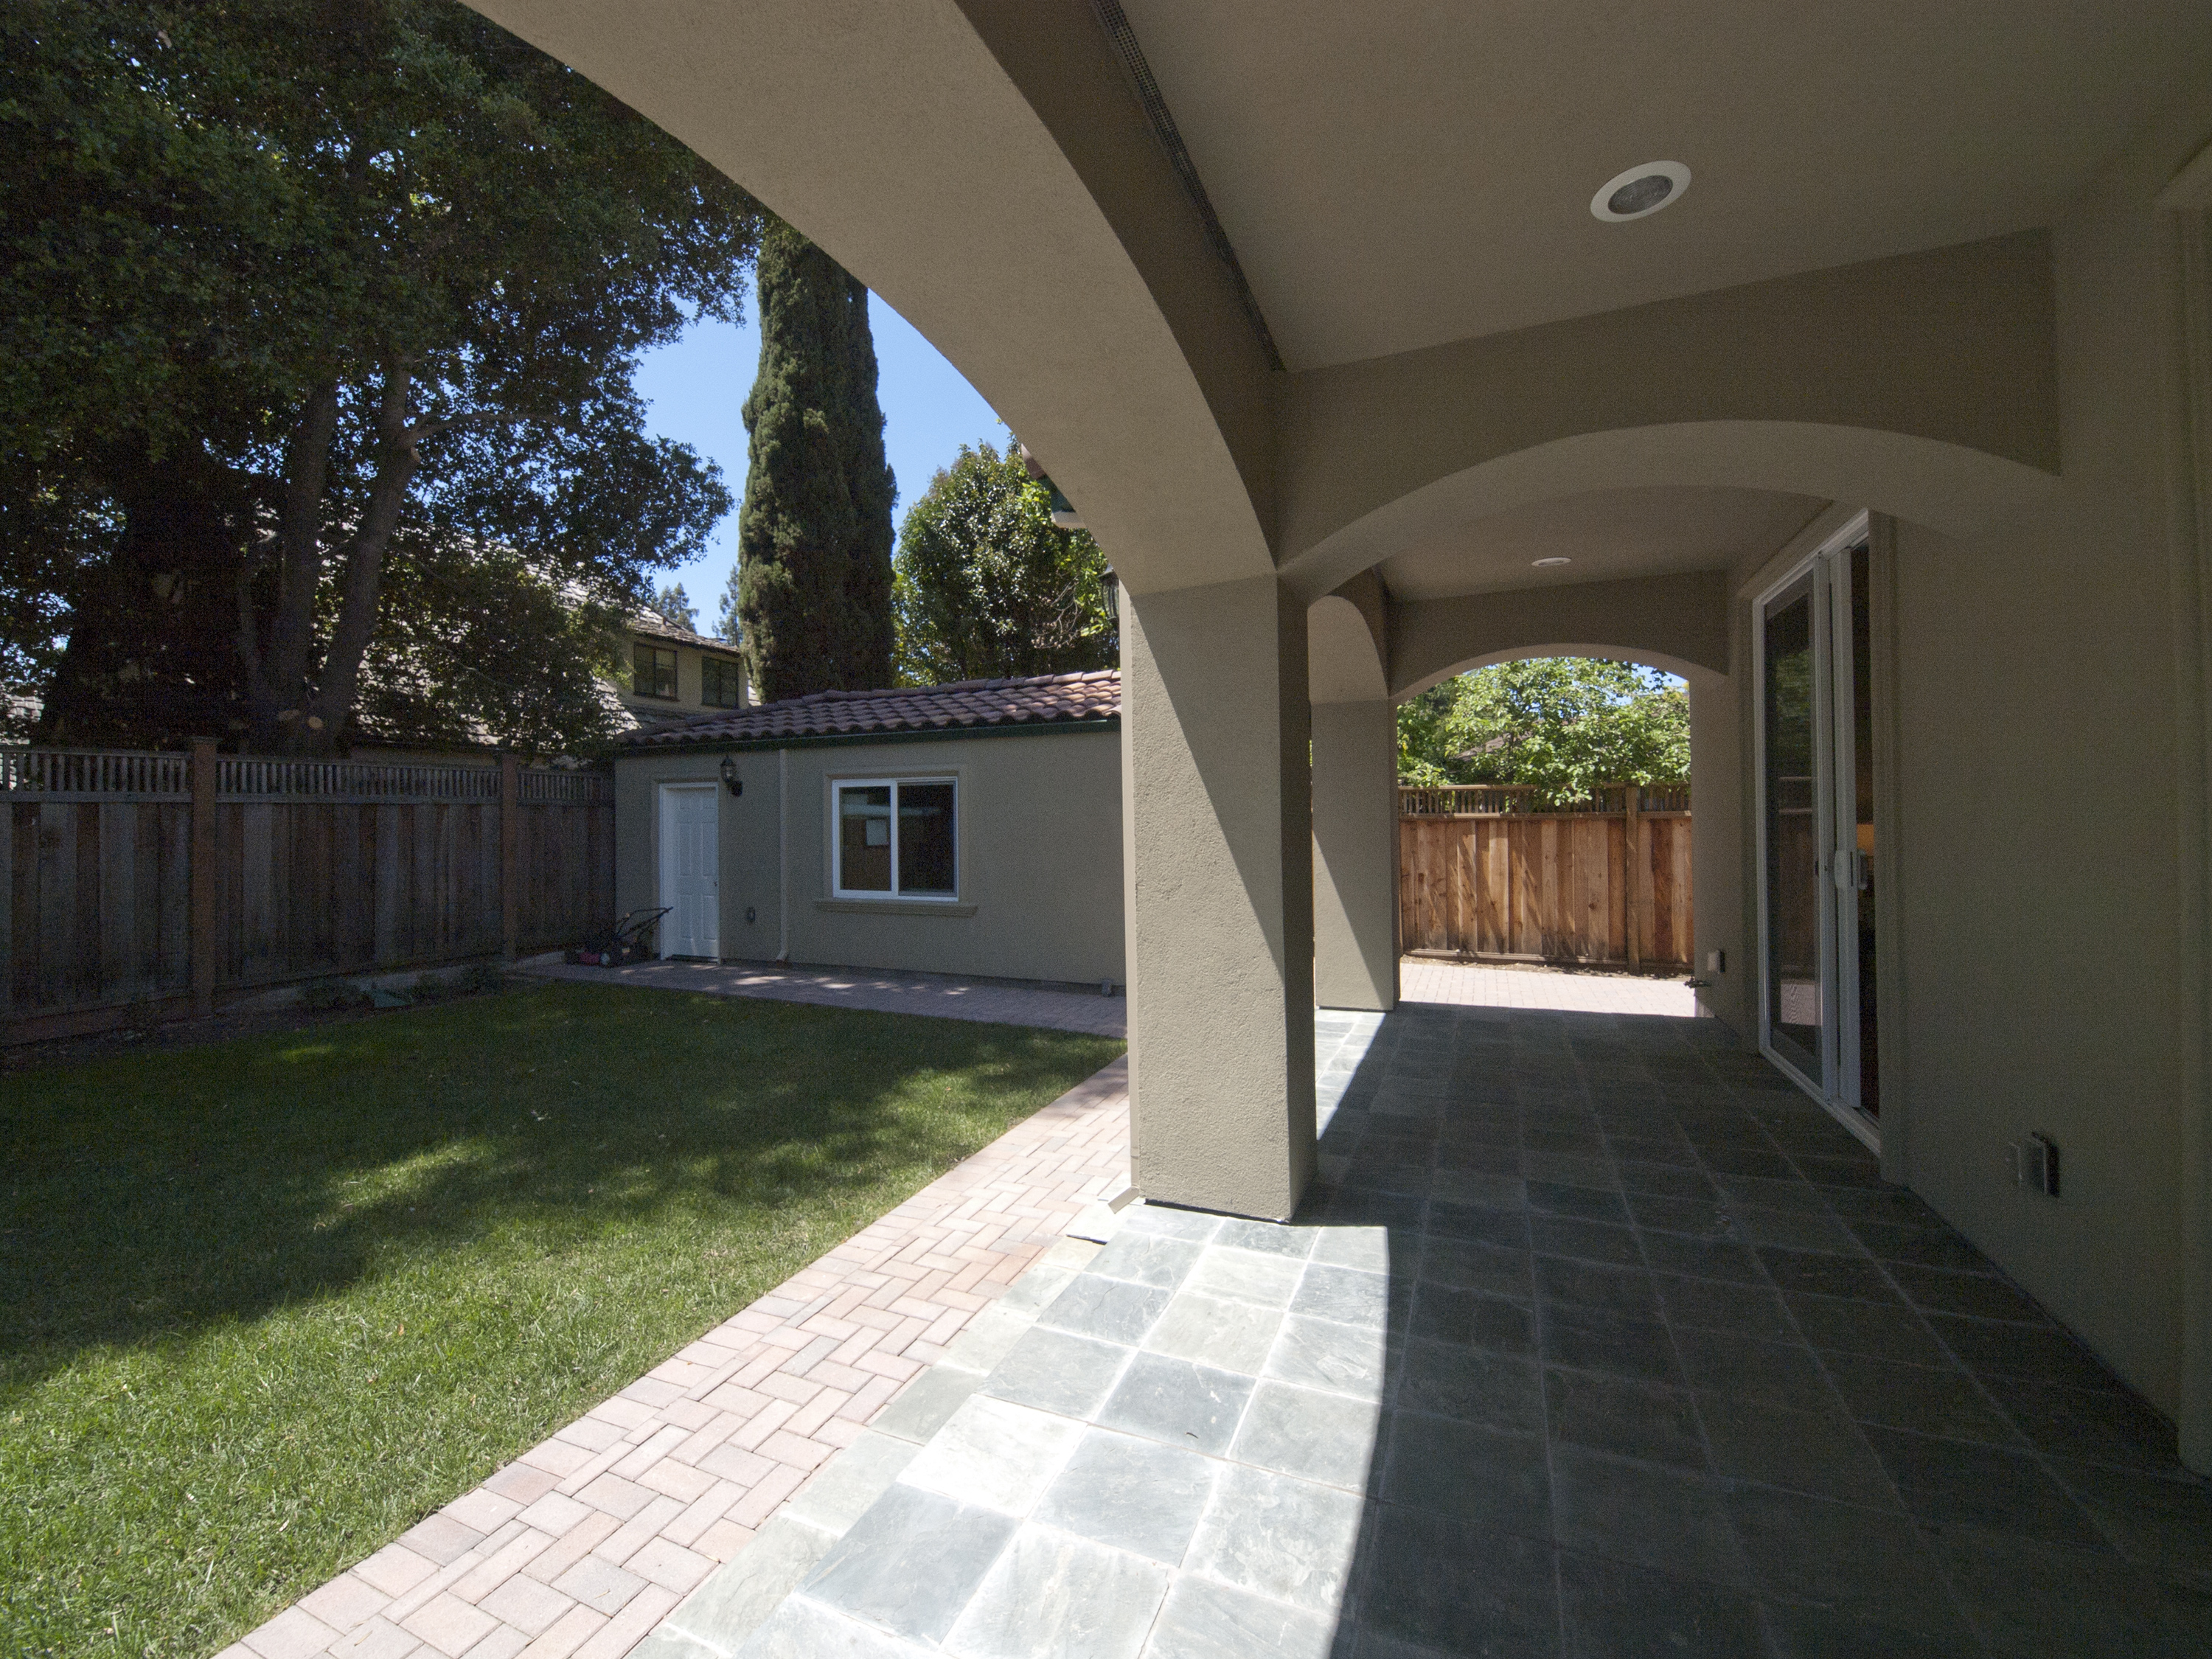 4198 Coulombe Dr, Palo Alto 94306